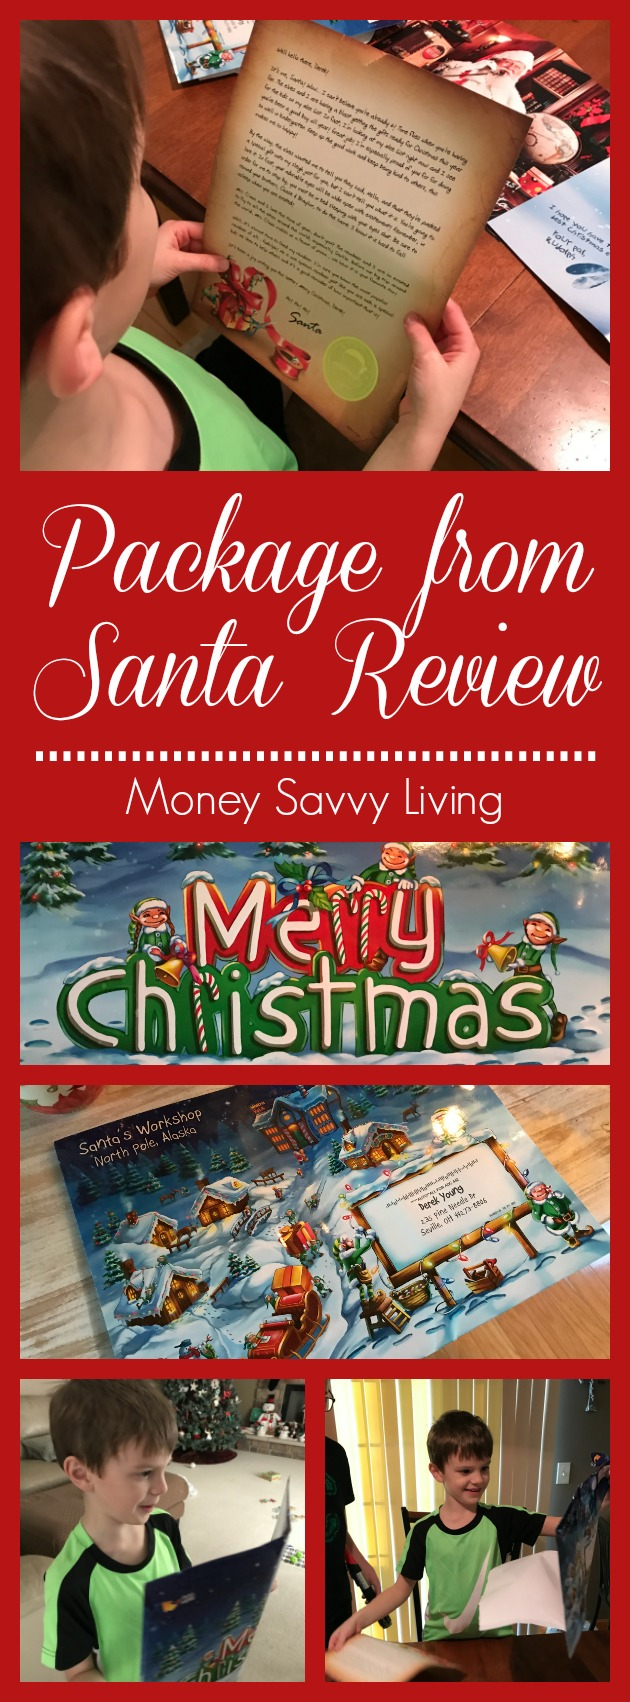 Christmas Archives  Money Savvy Living